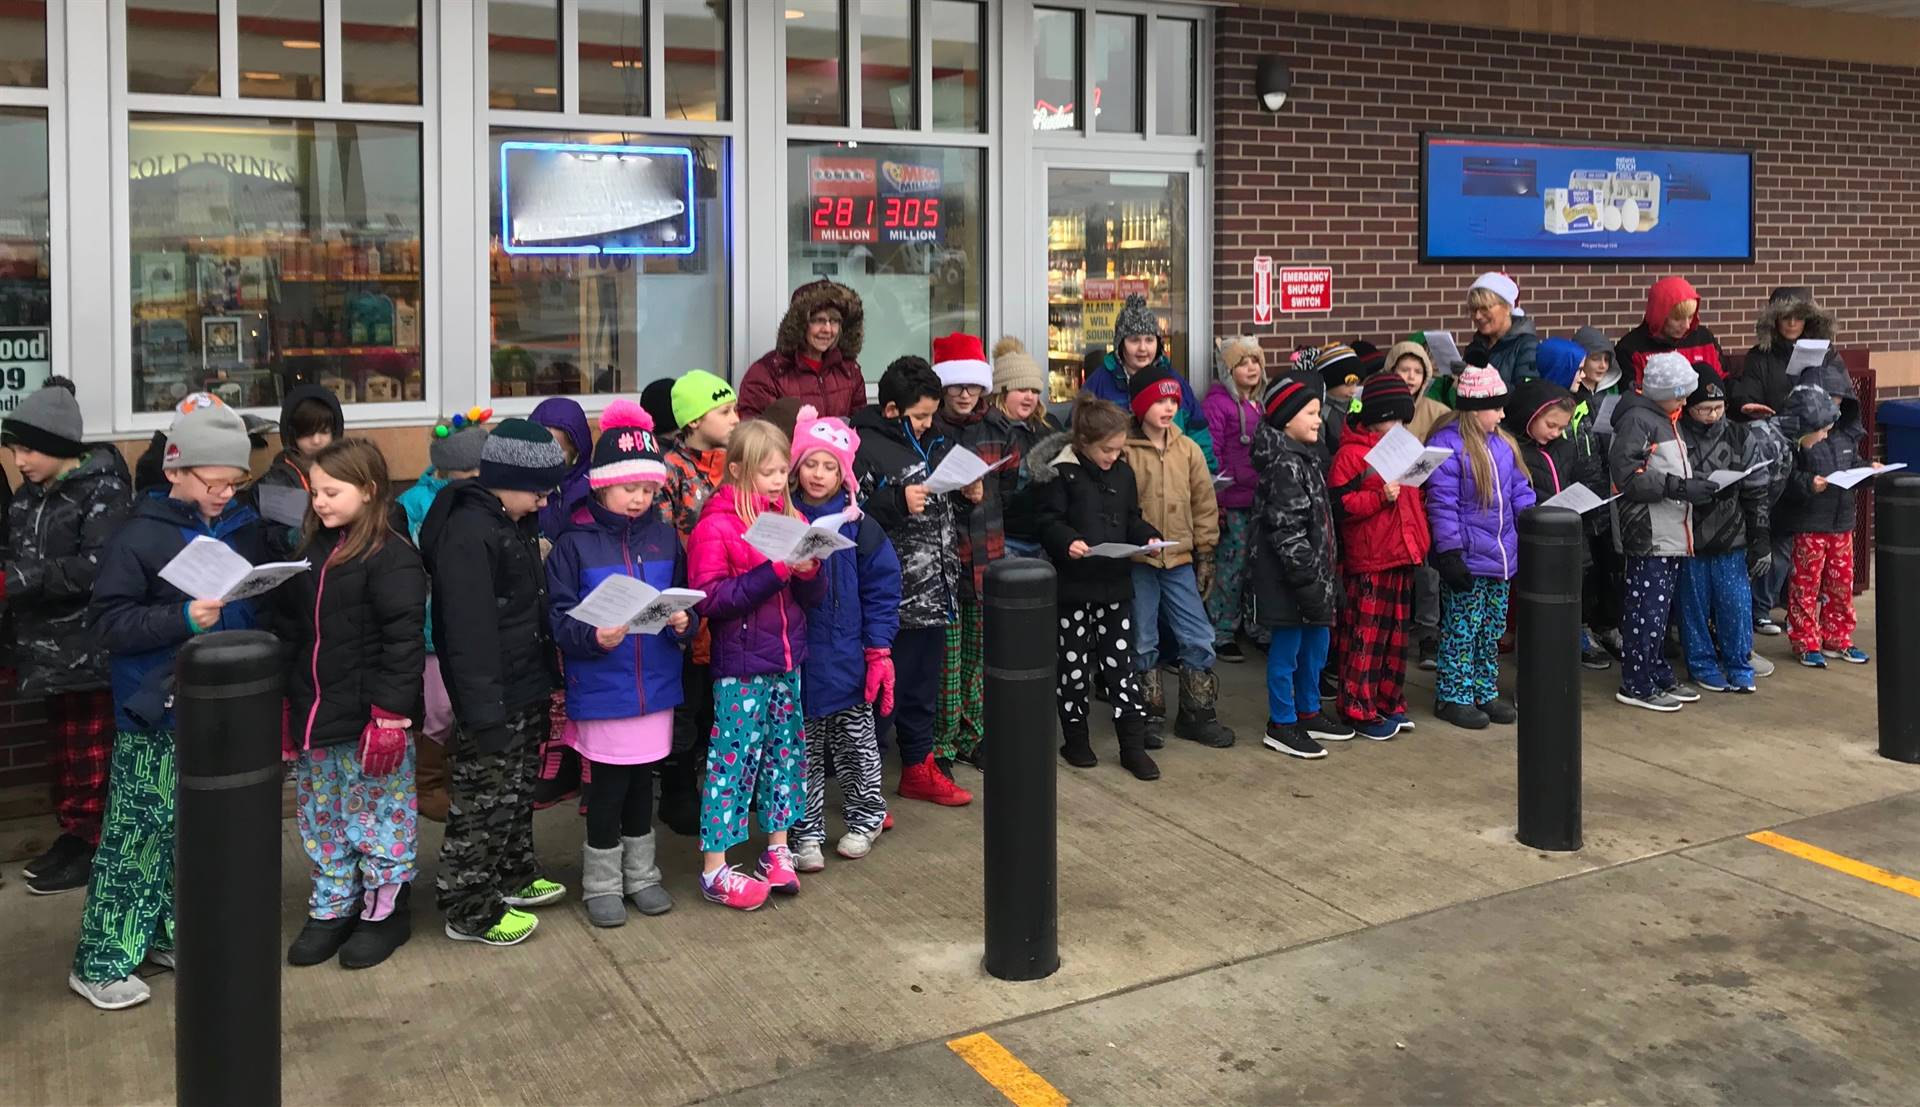 students singing outside of local business